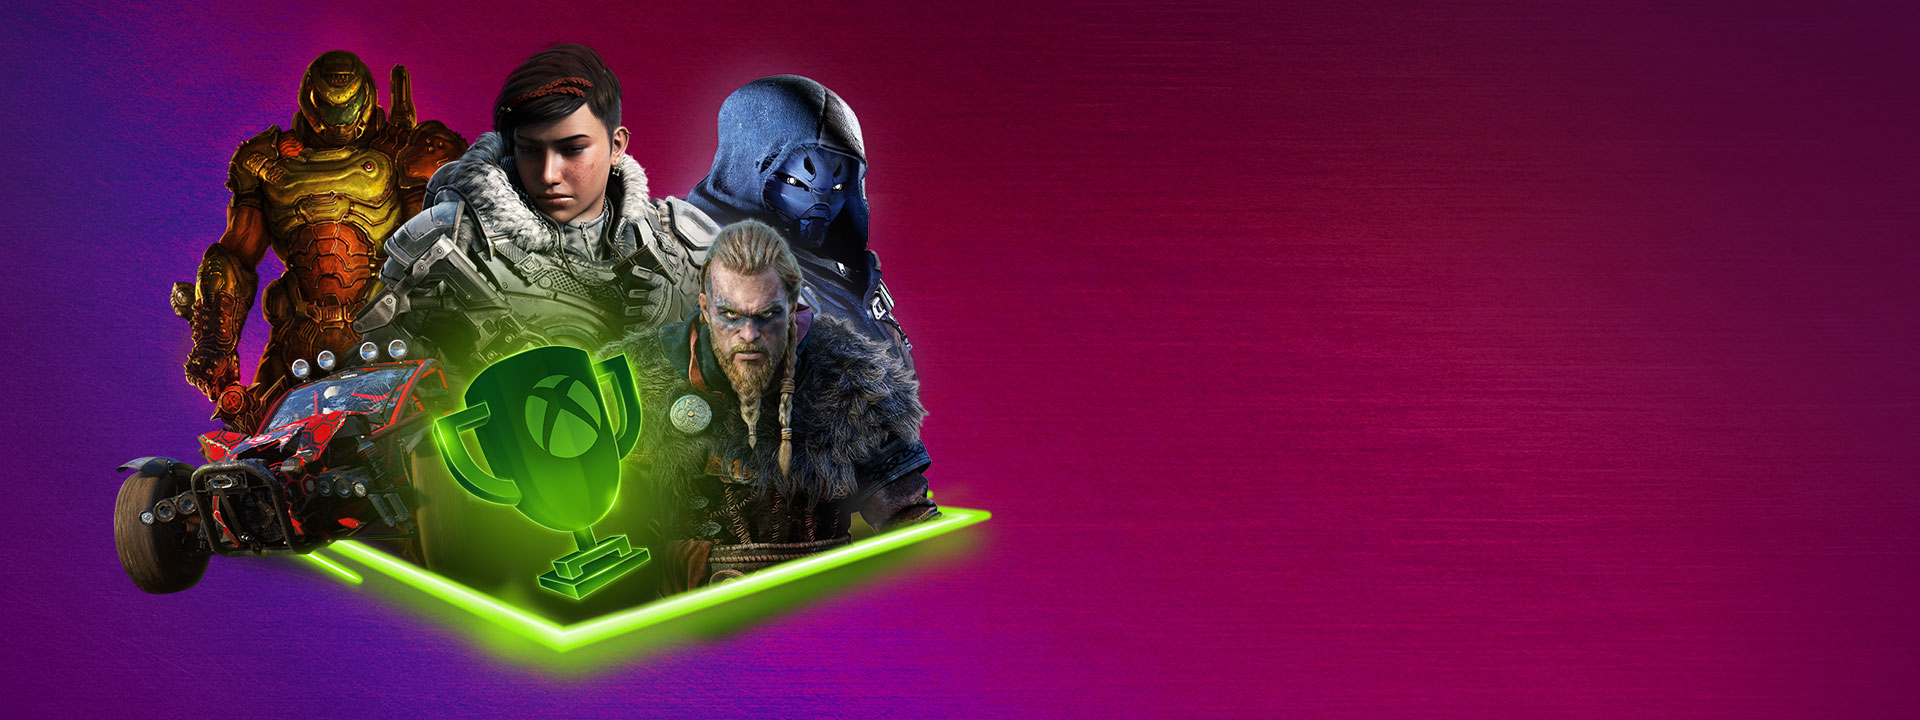 A collection of games available in the Deals Unlocked sale on a purple background.